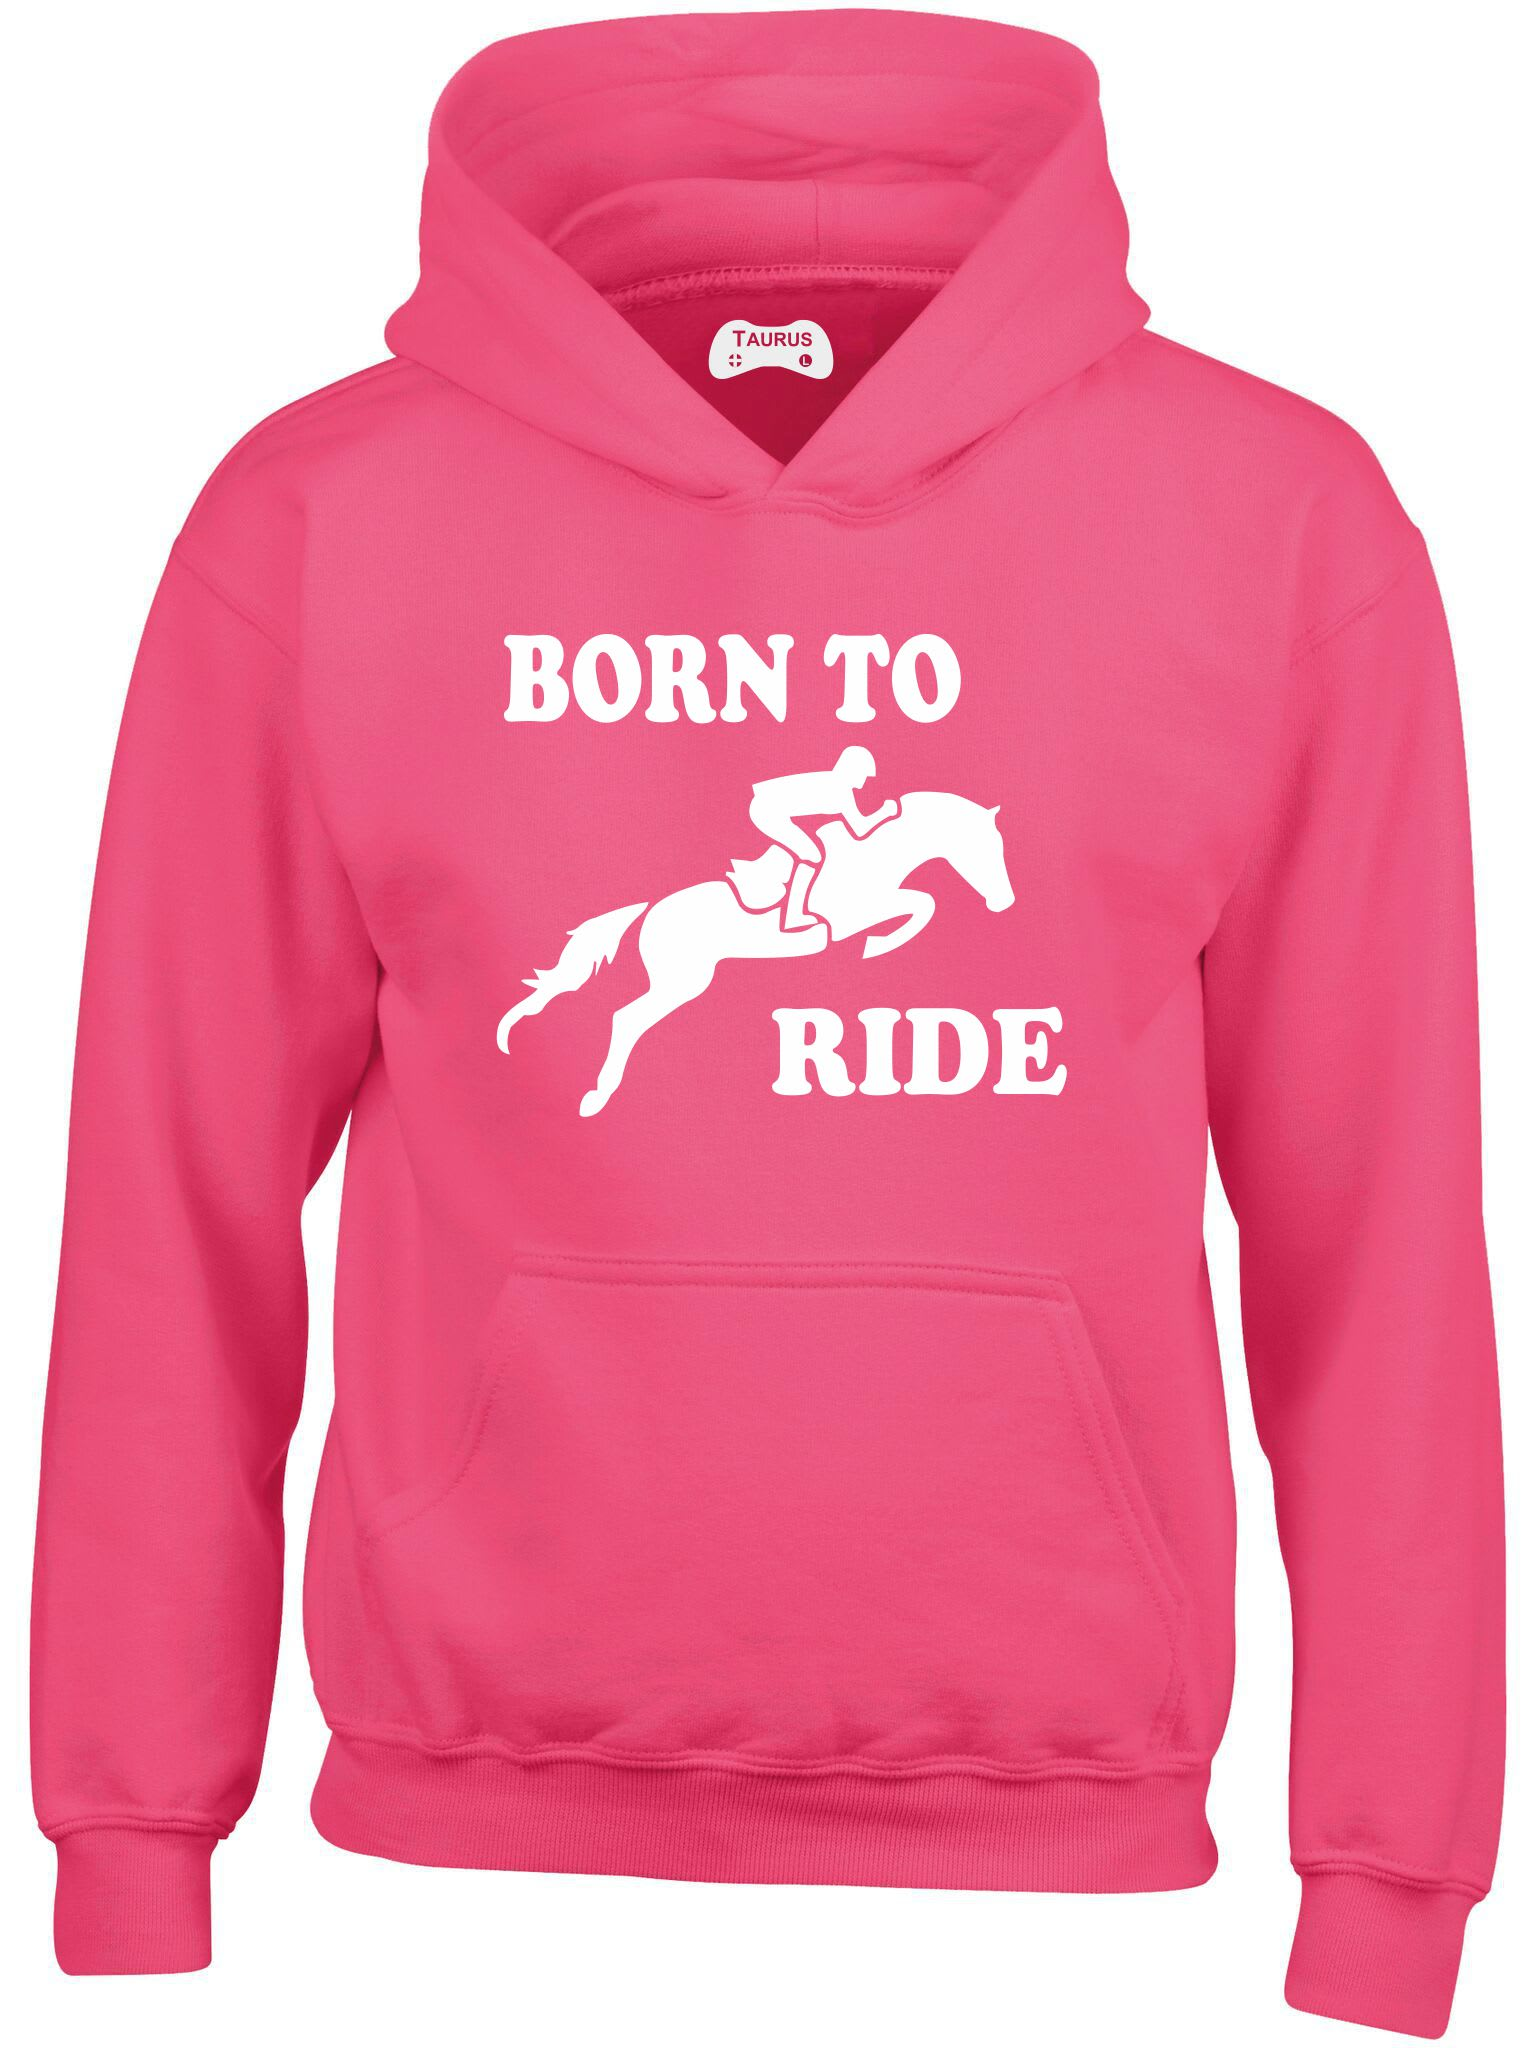 Born To Ride Kids Hoodie